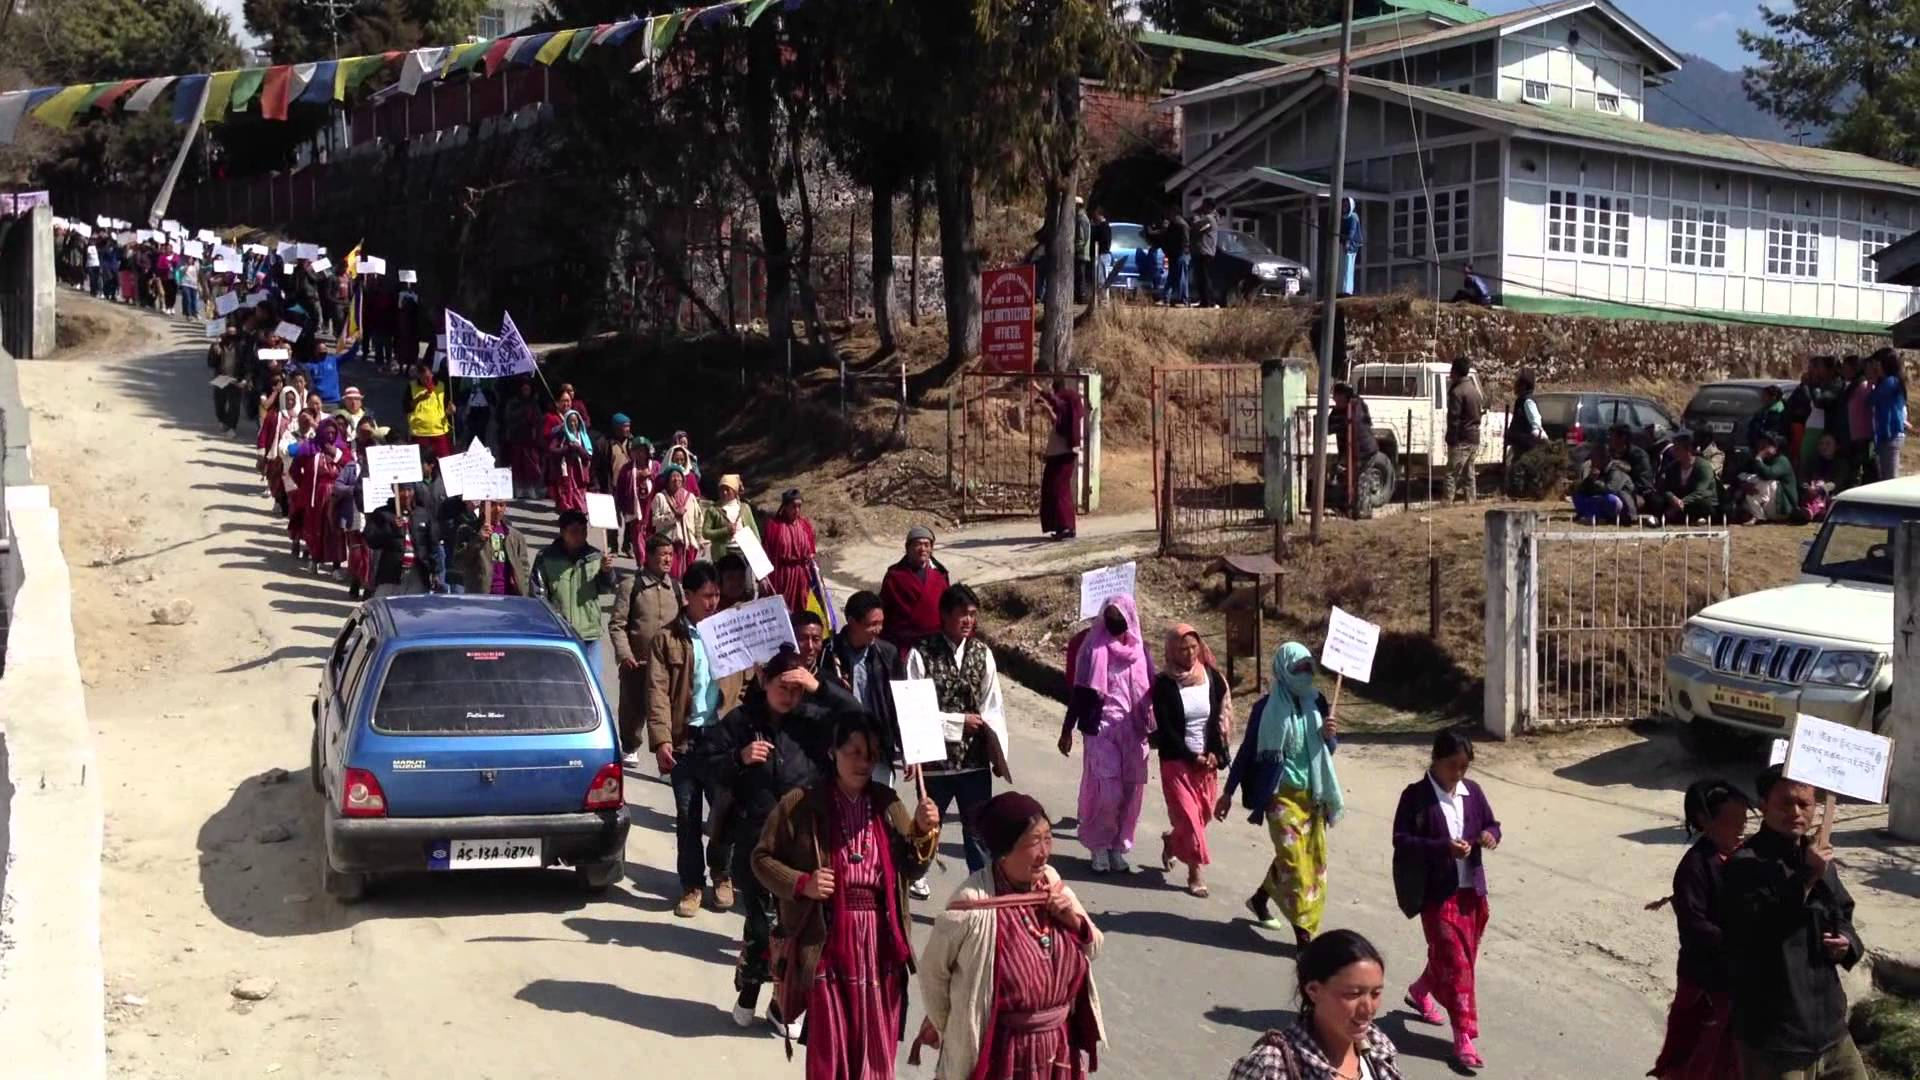 An anti-dam protest in Tawang. The people of Arunachal Pradesh have traditionally been opposed to big dams. (Credit: Lobsang Tashi / via YouTube)